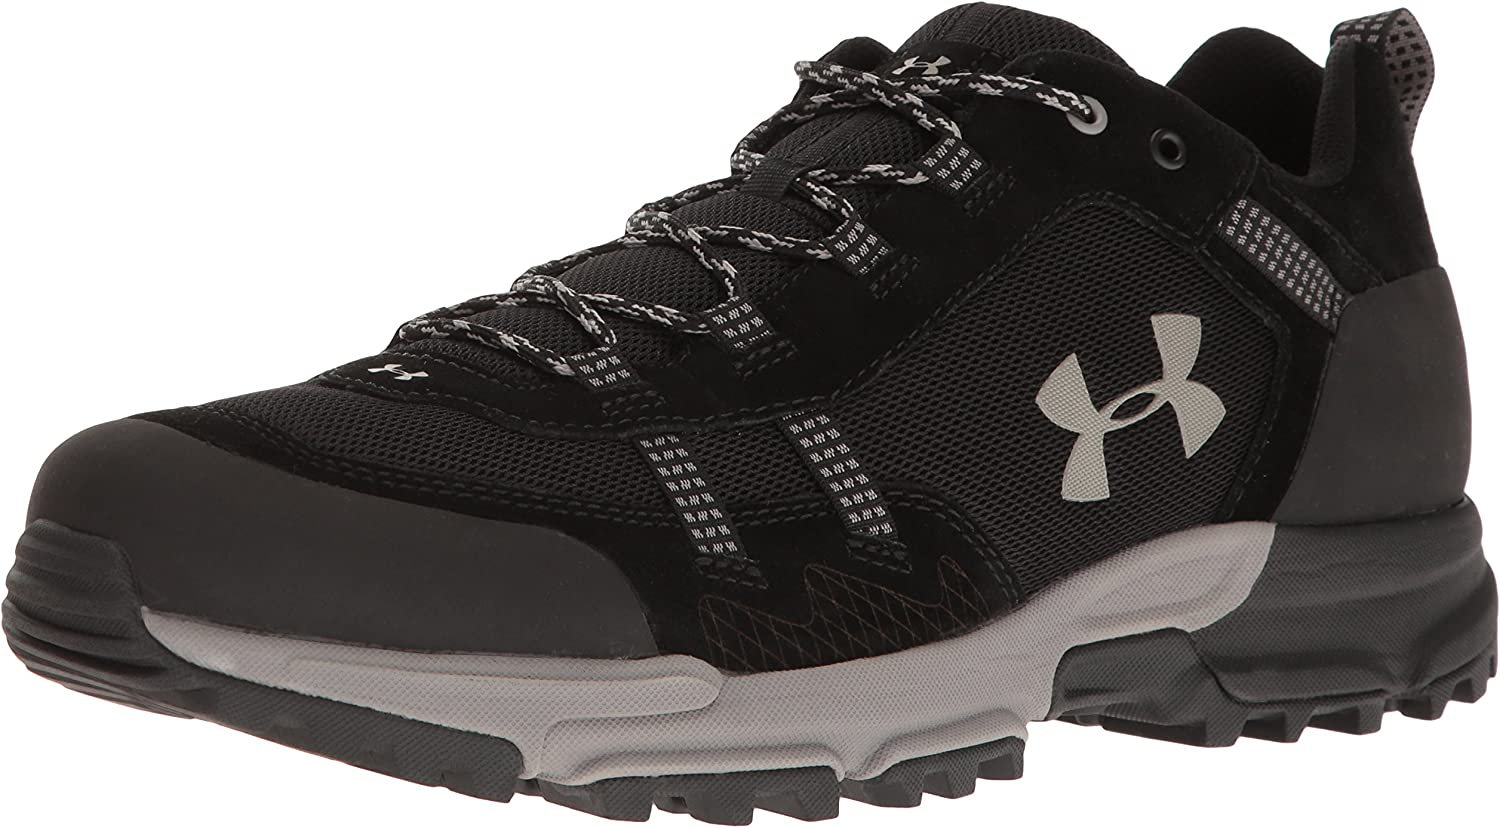 Under Armour Women s Post Canyon Low Cross-Trainer Shoe